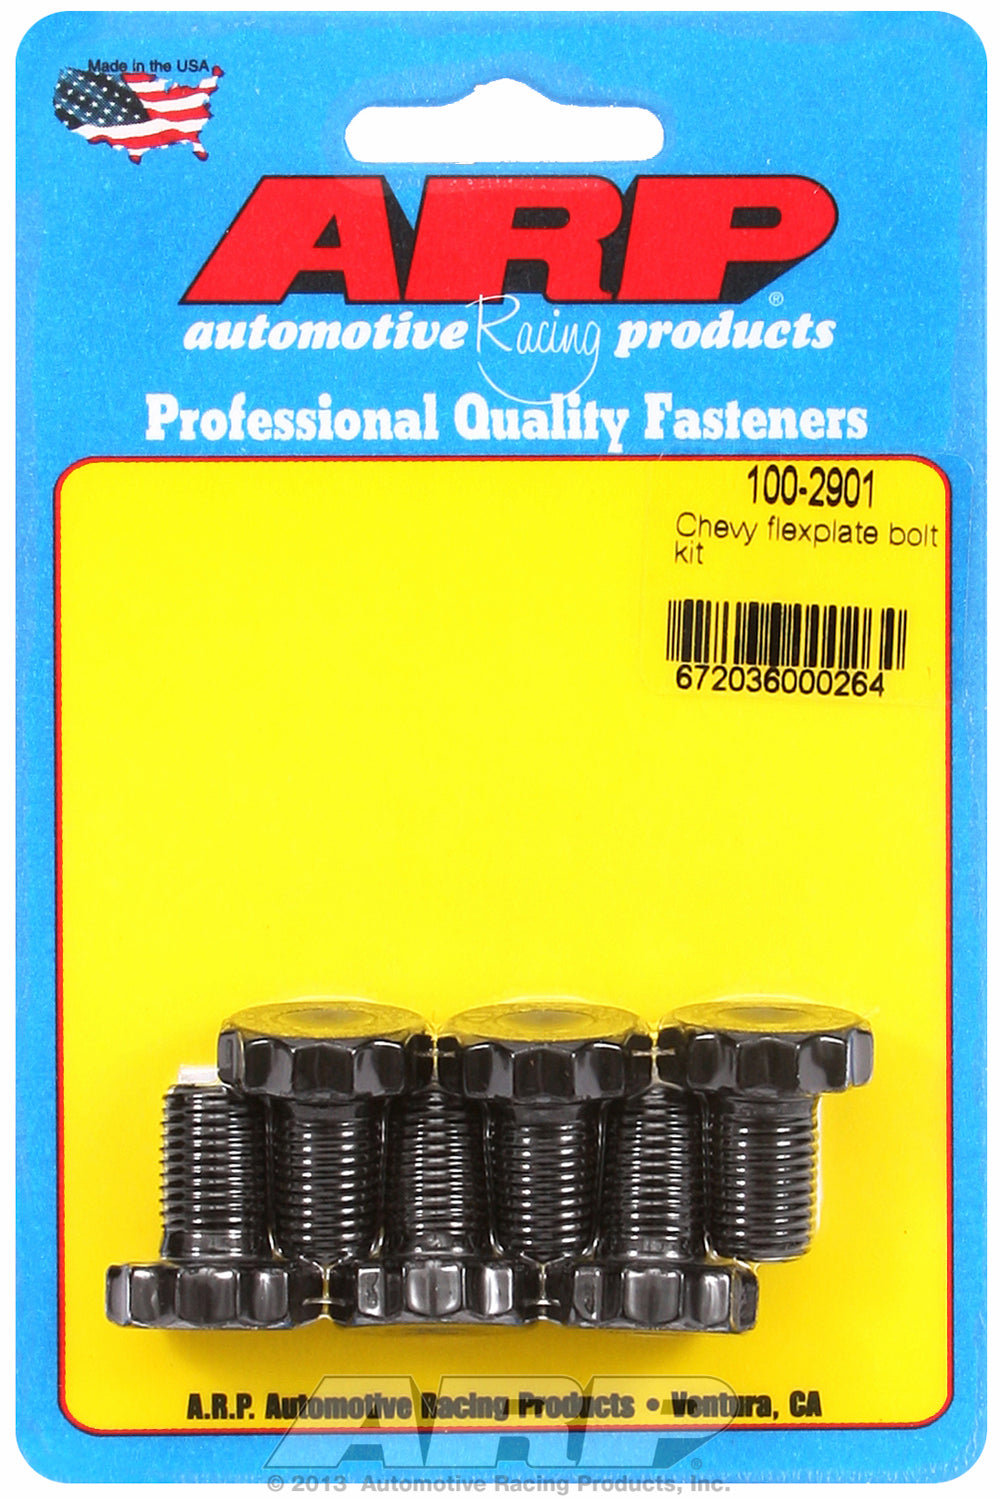 Flexplate Bolt Kit for 90° V6 & 265-454 V8 w/ 2pc. rear seal High Performance Series